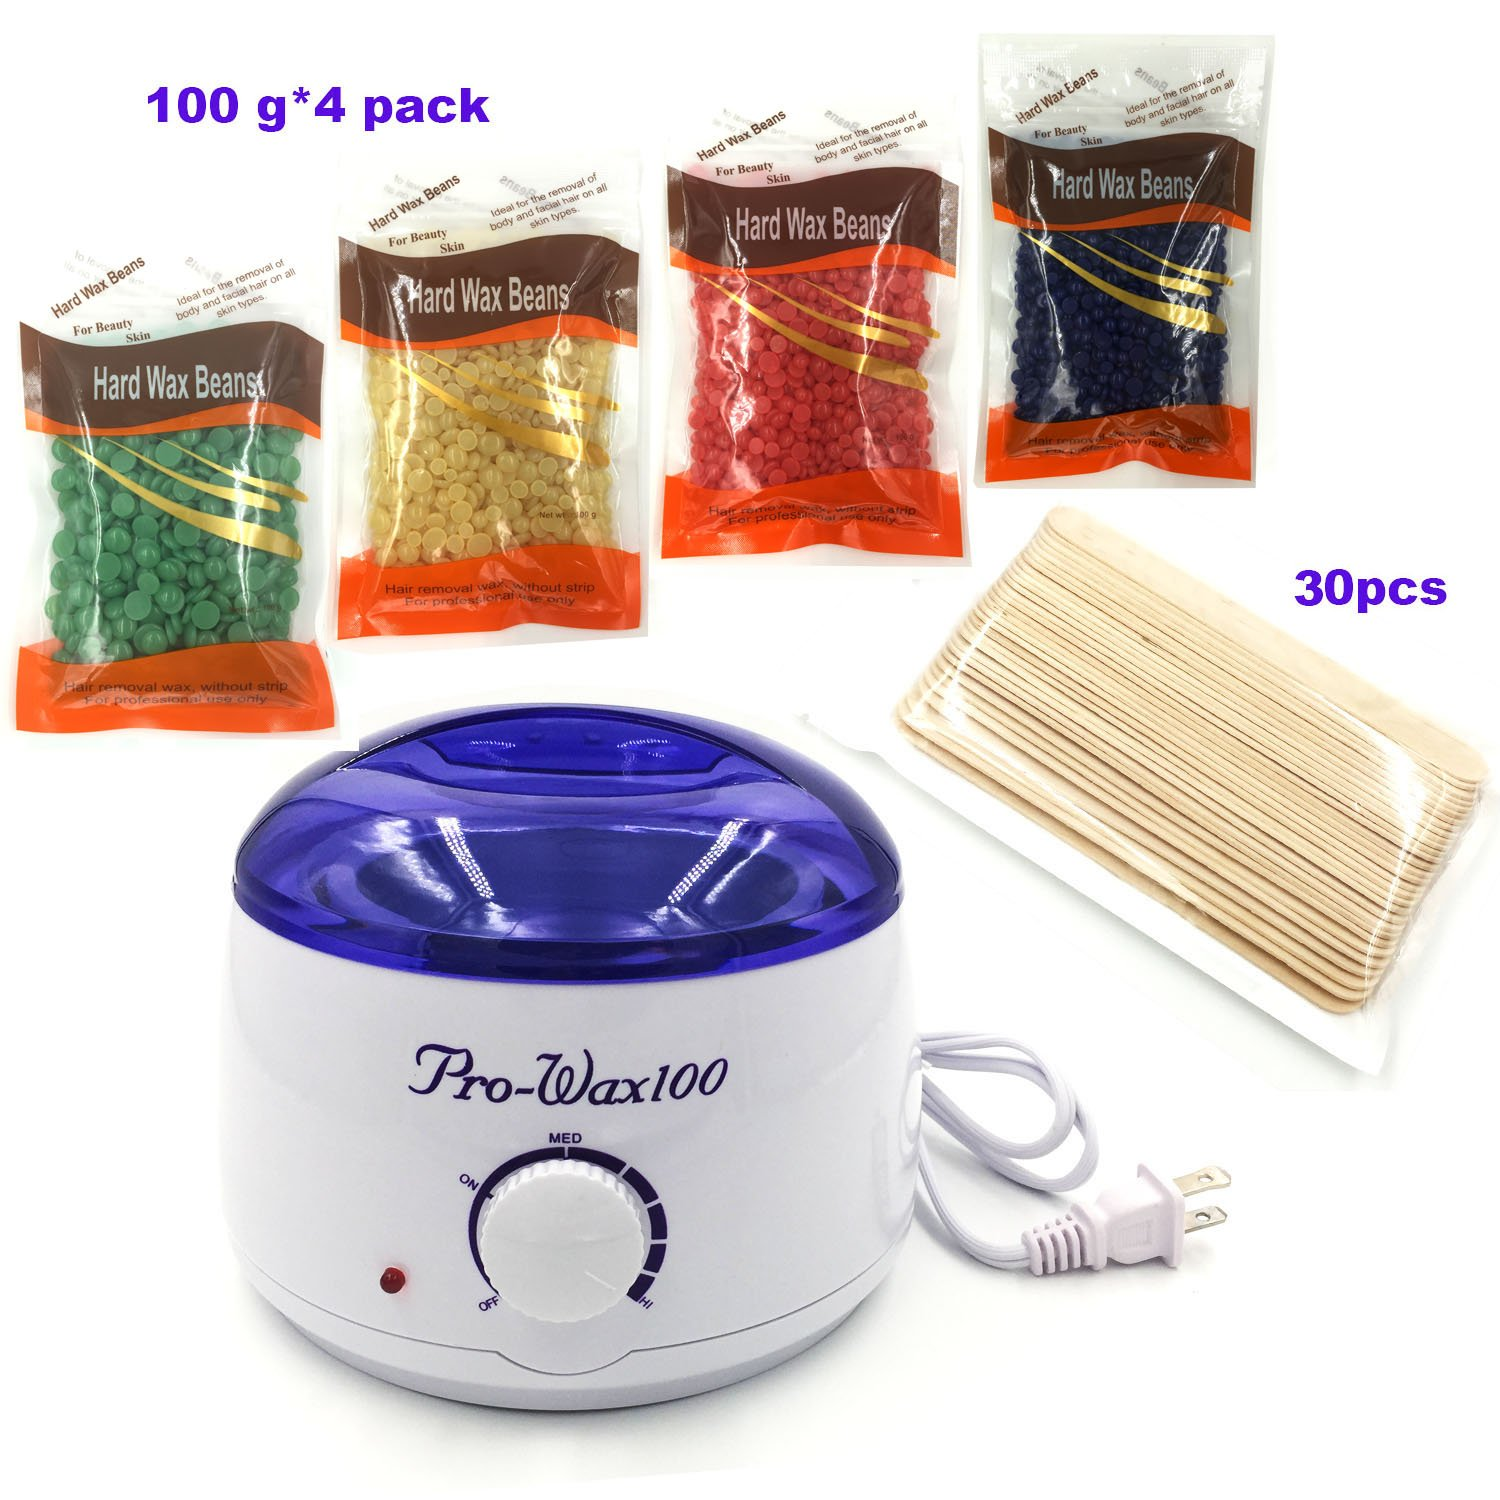 [2018 UPGRADED] Wax Warmer Electric with 4 Packs Hard Wax Beans and 30 Applicator Sticks Home Waxing Kit (blue)